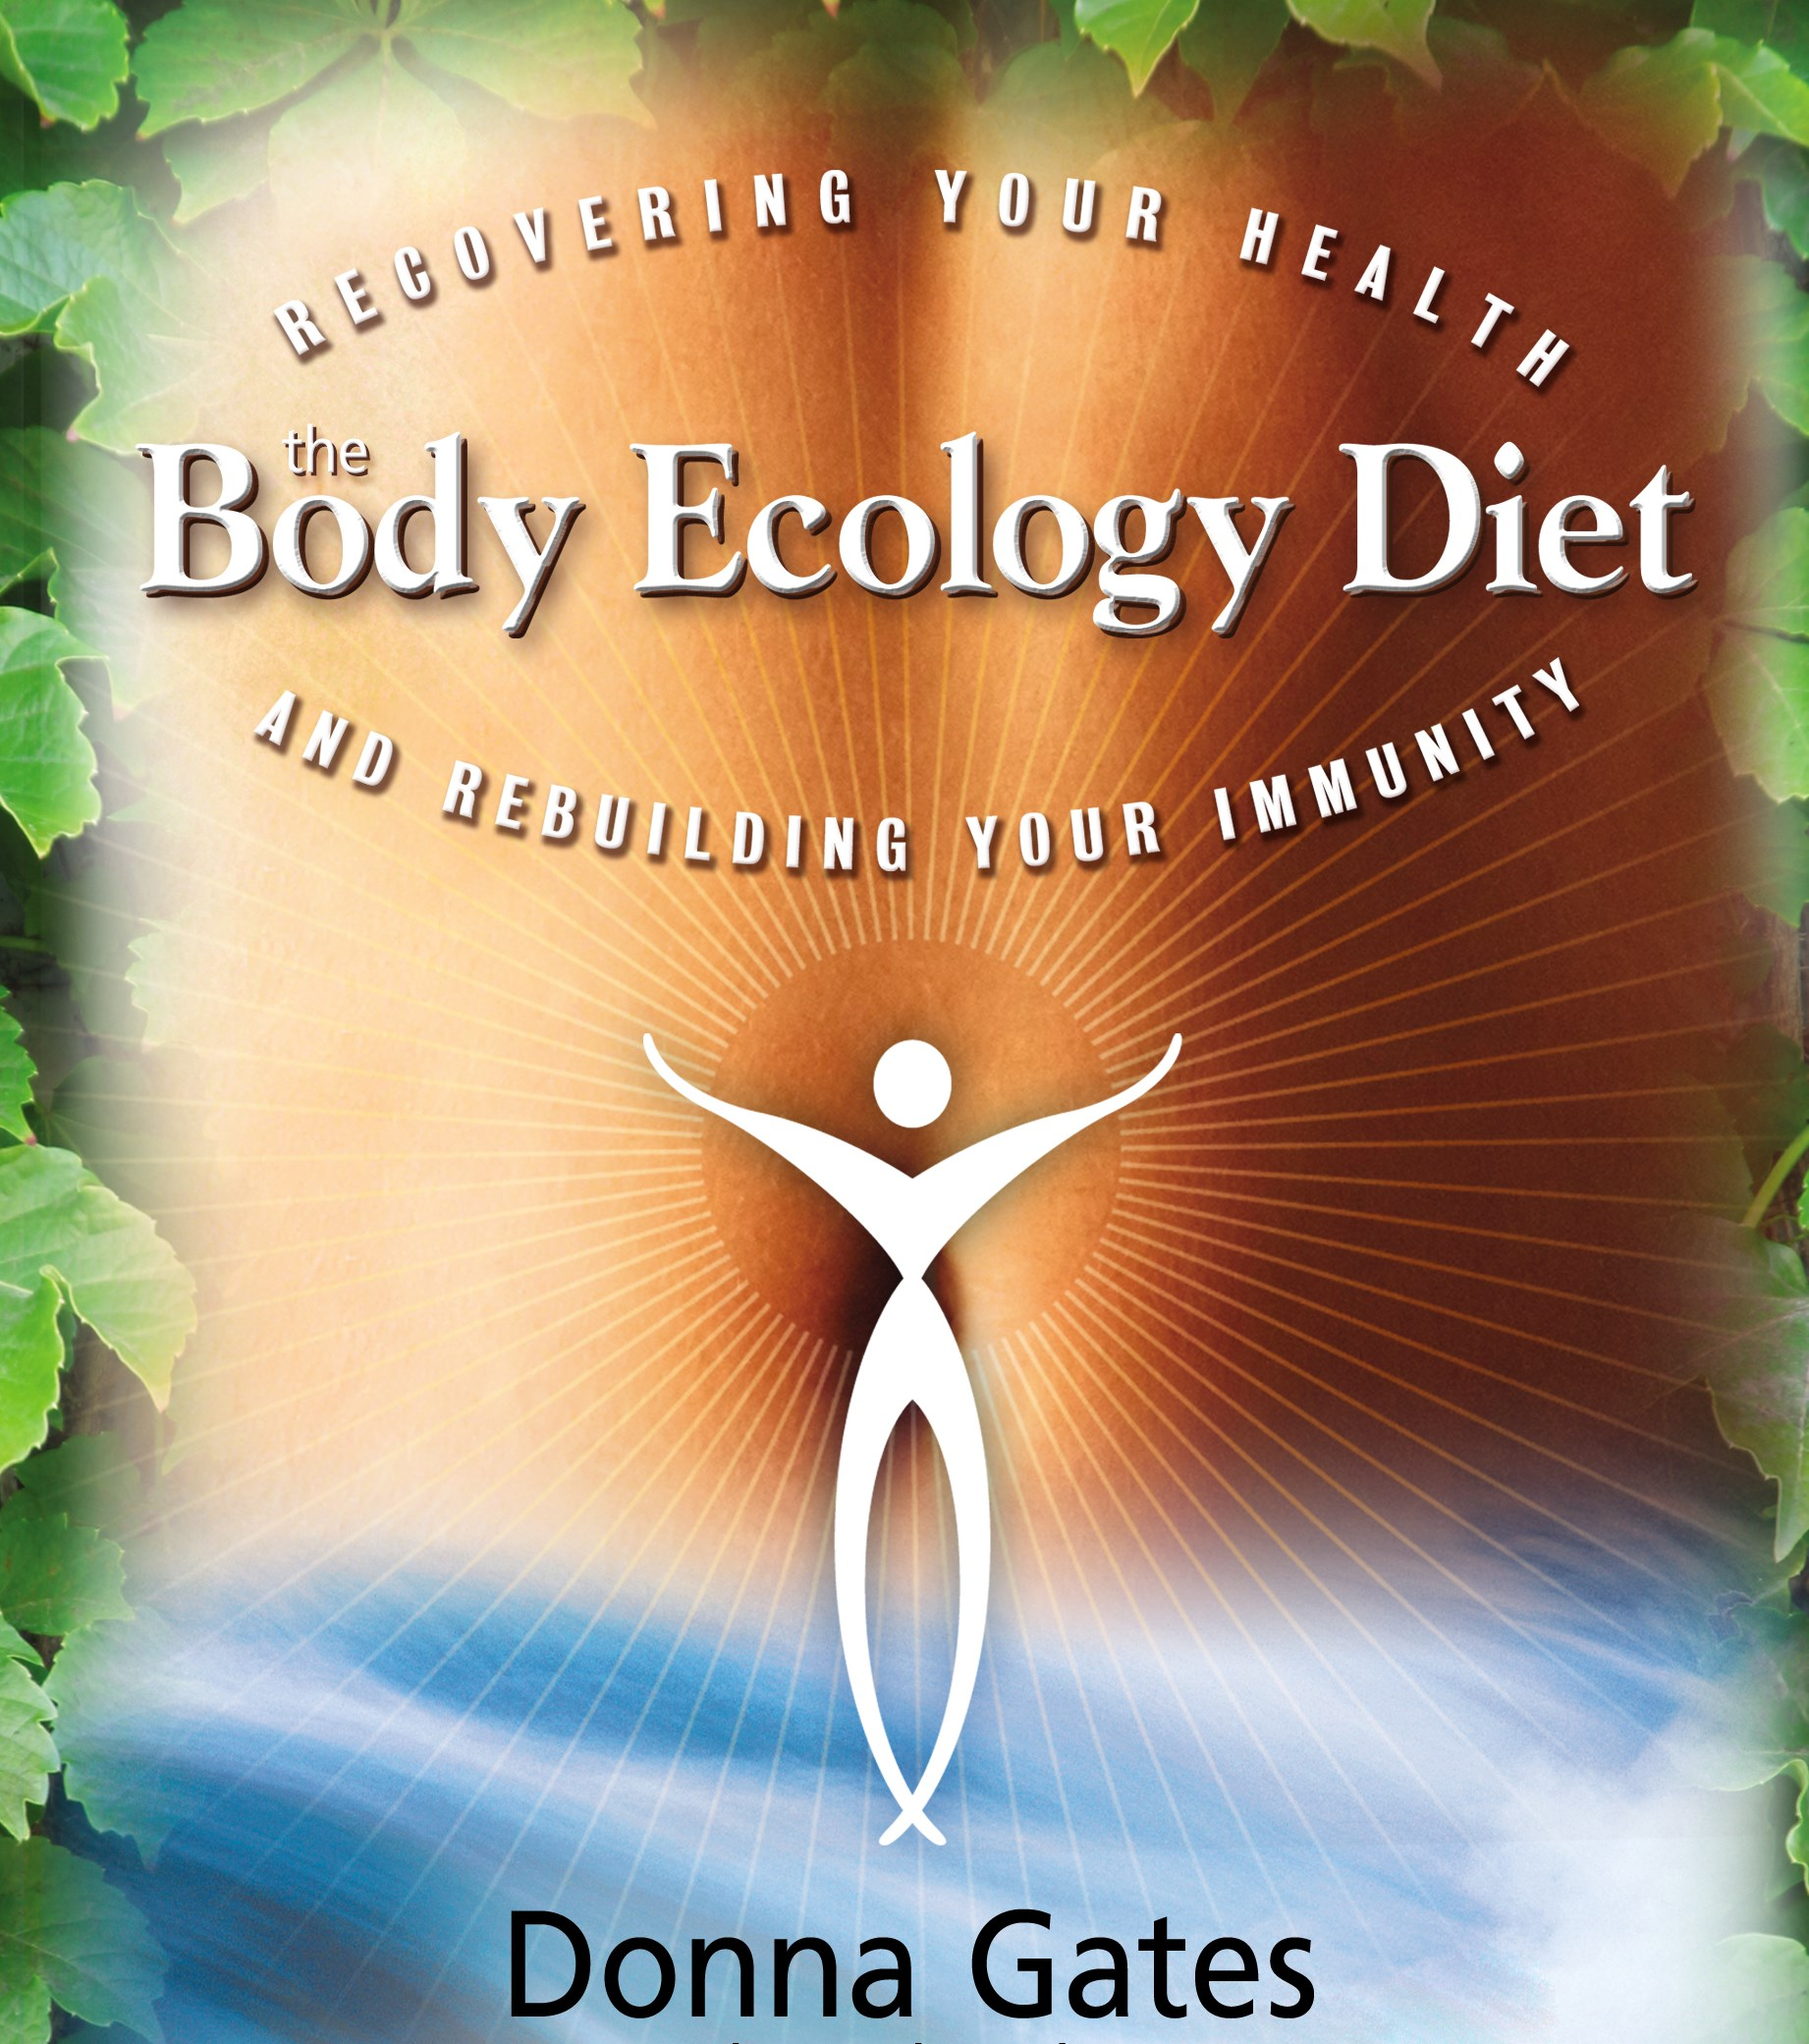 BodyEcologyDiet-healingthroughout